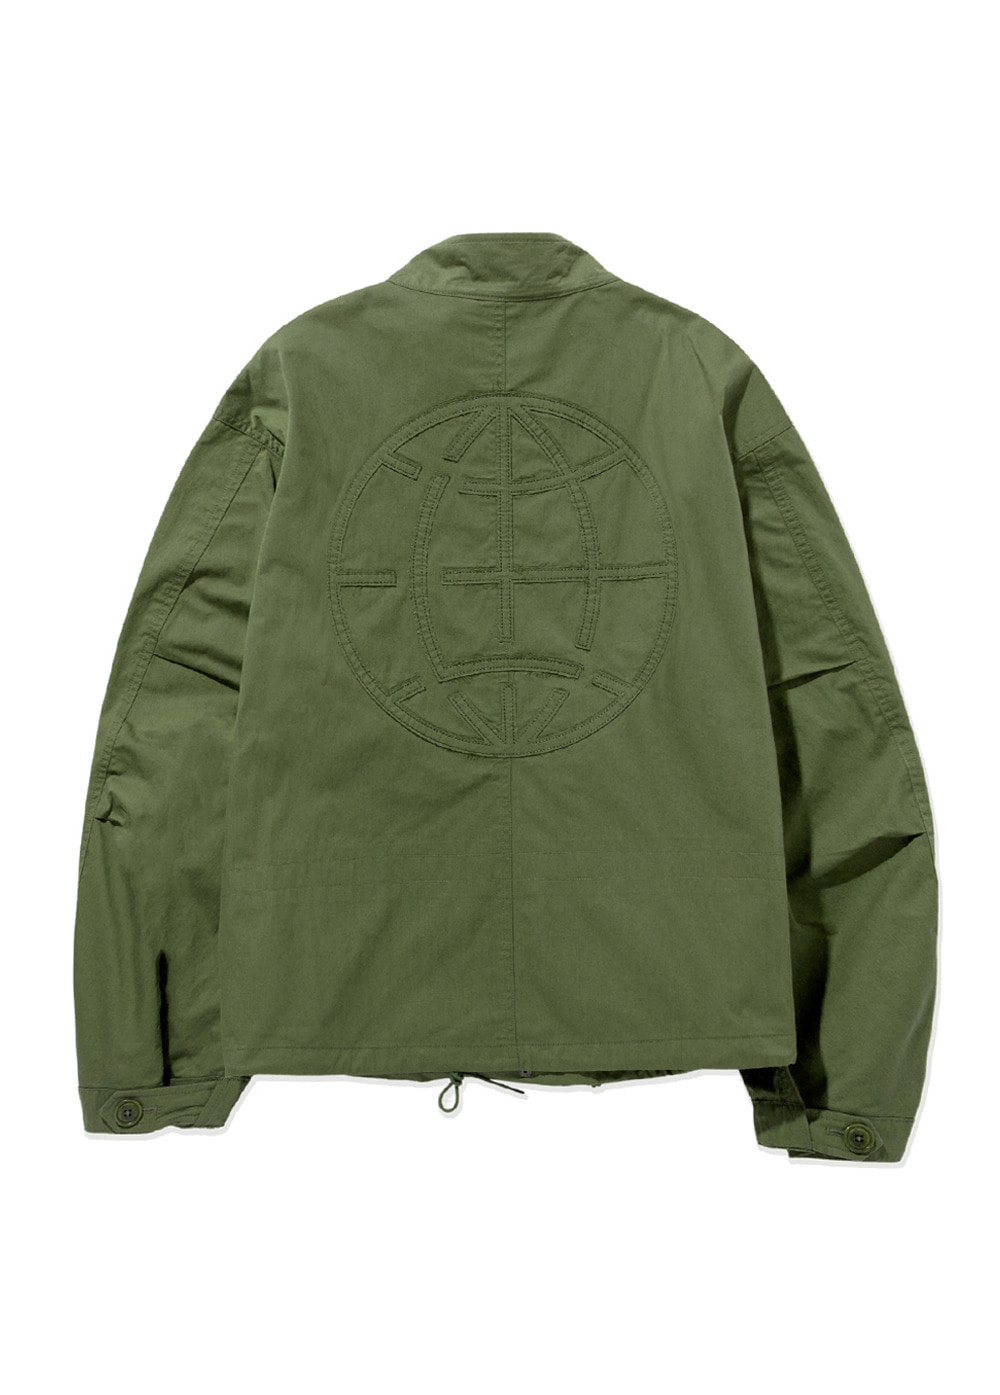 LMC CROPPED MILITARY M-65 JACKET olive